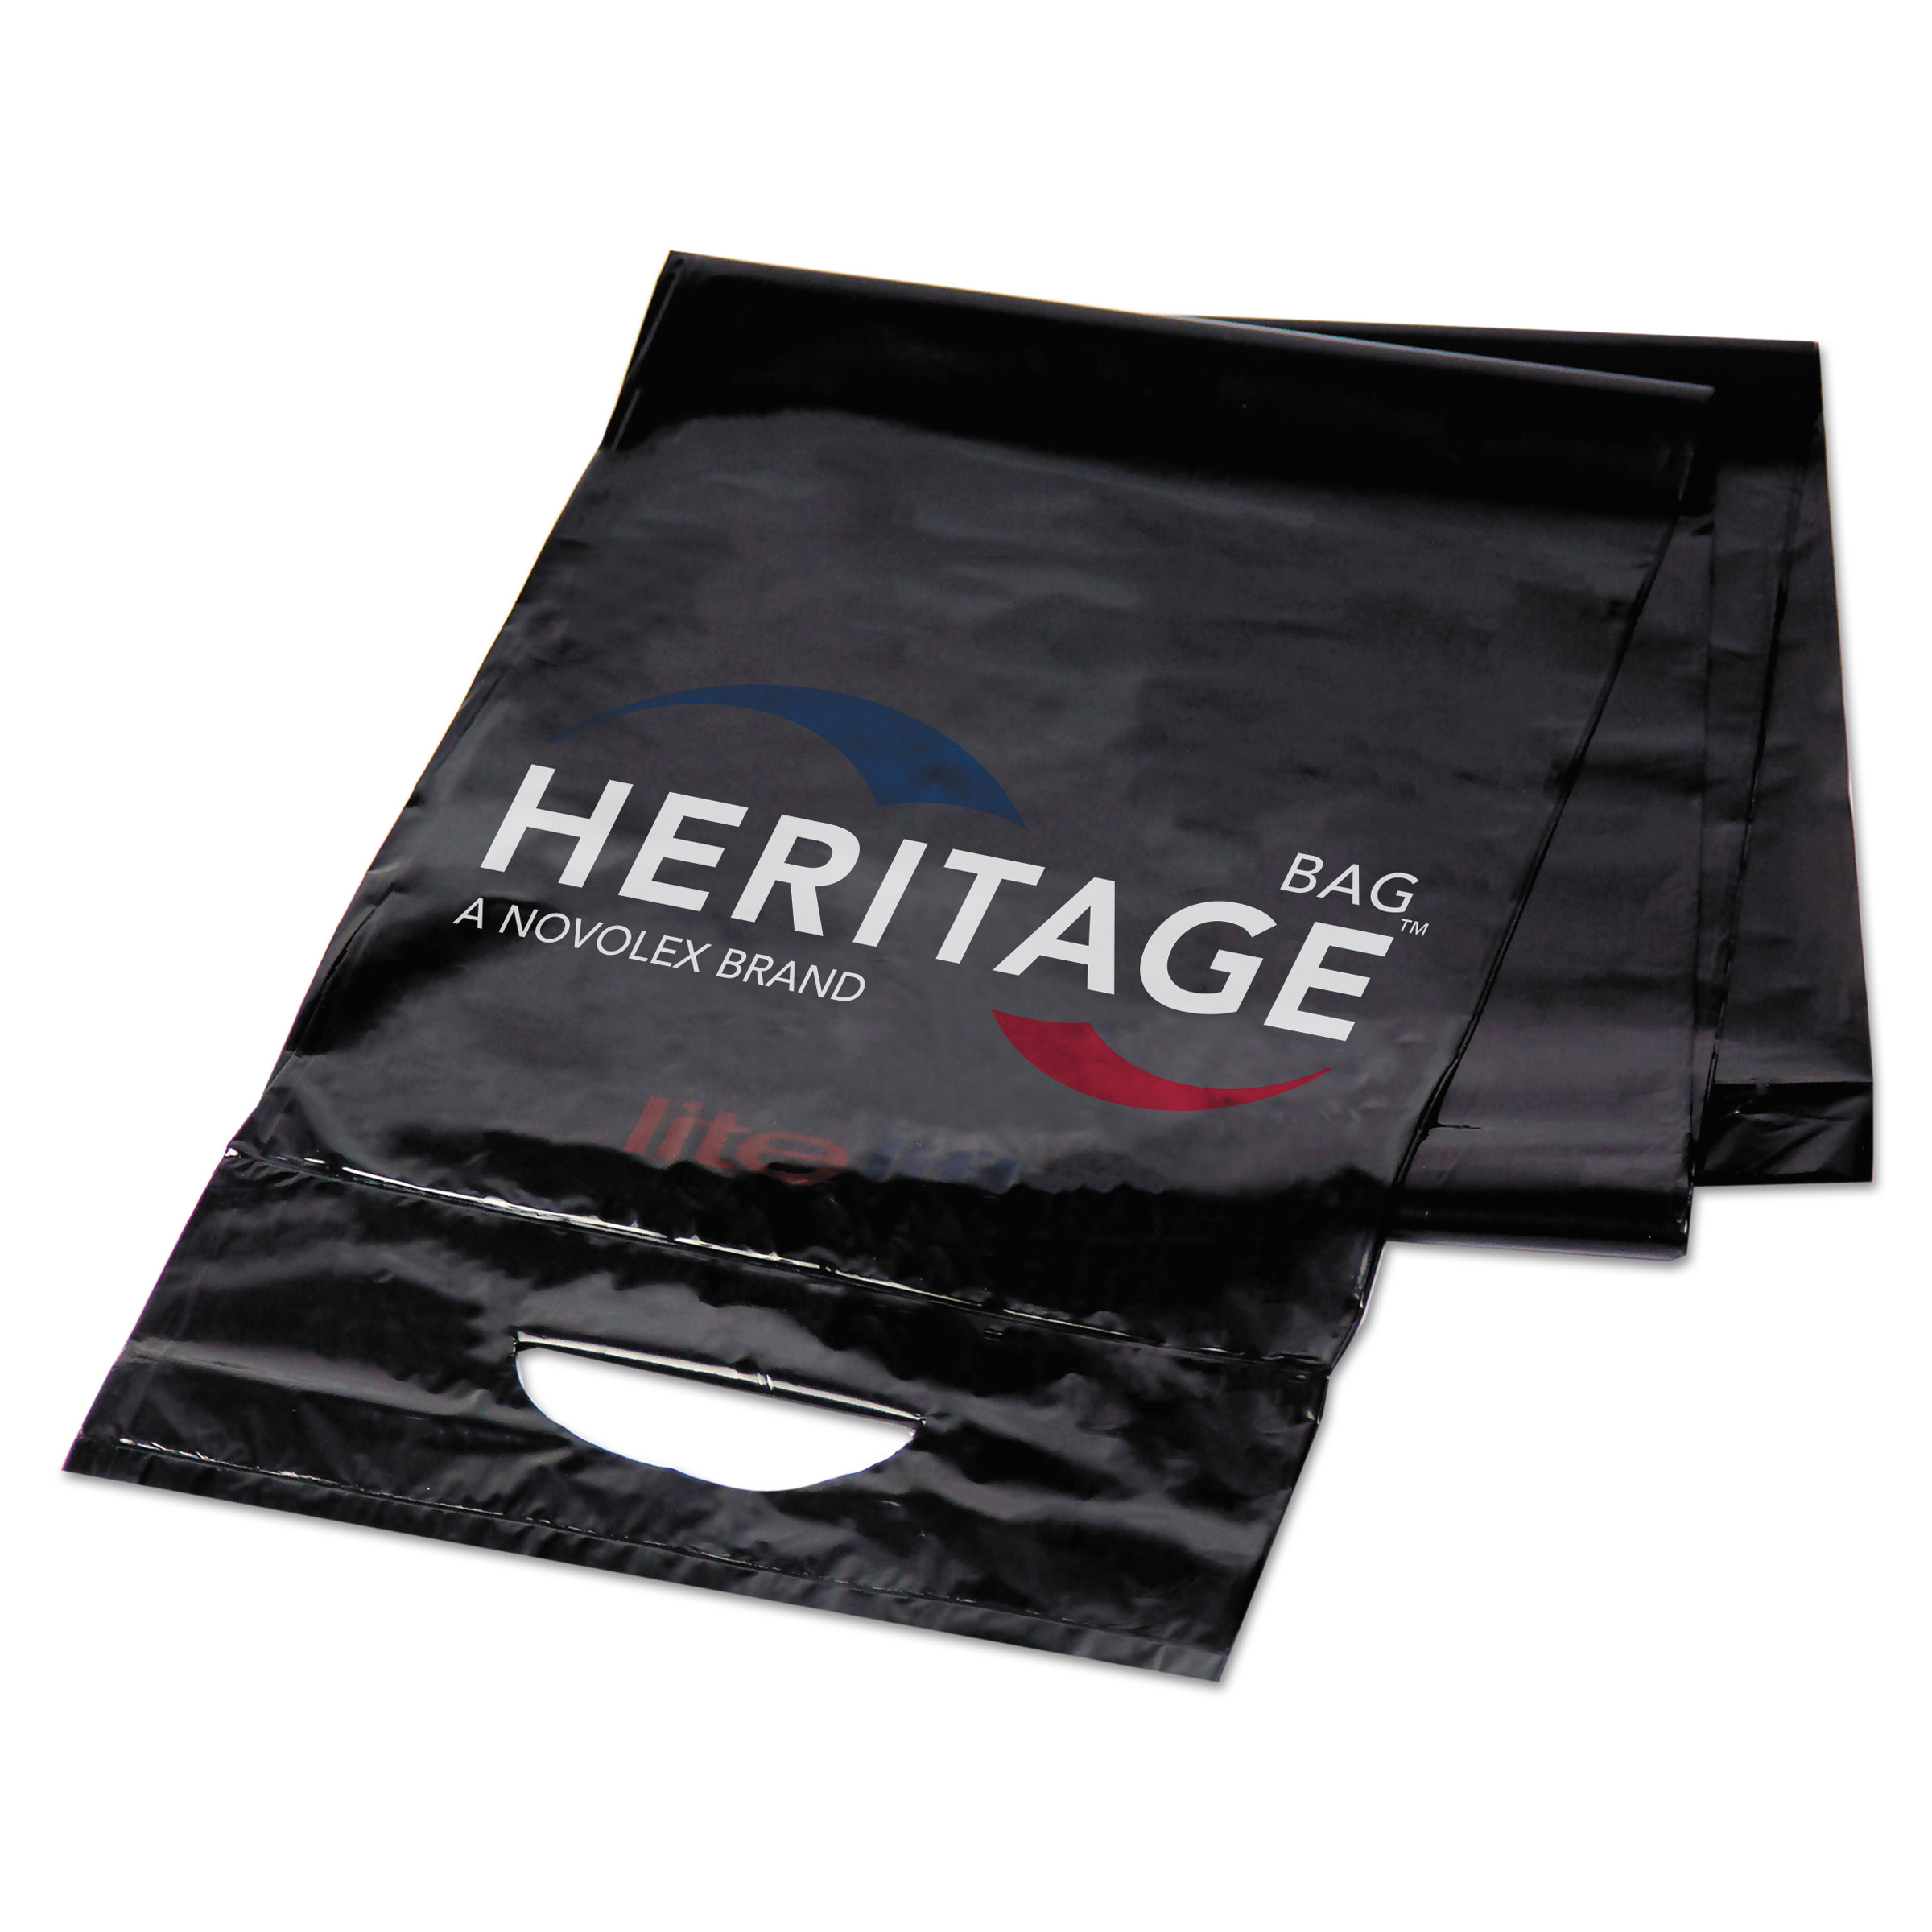 Heritage Litelift Low-Density Trash Bags, 55 gal, 1.3 mil, 40 x 53, Black, 100/Carton